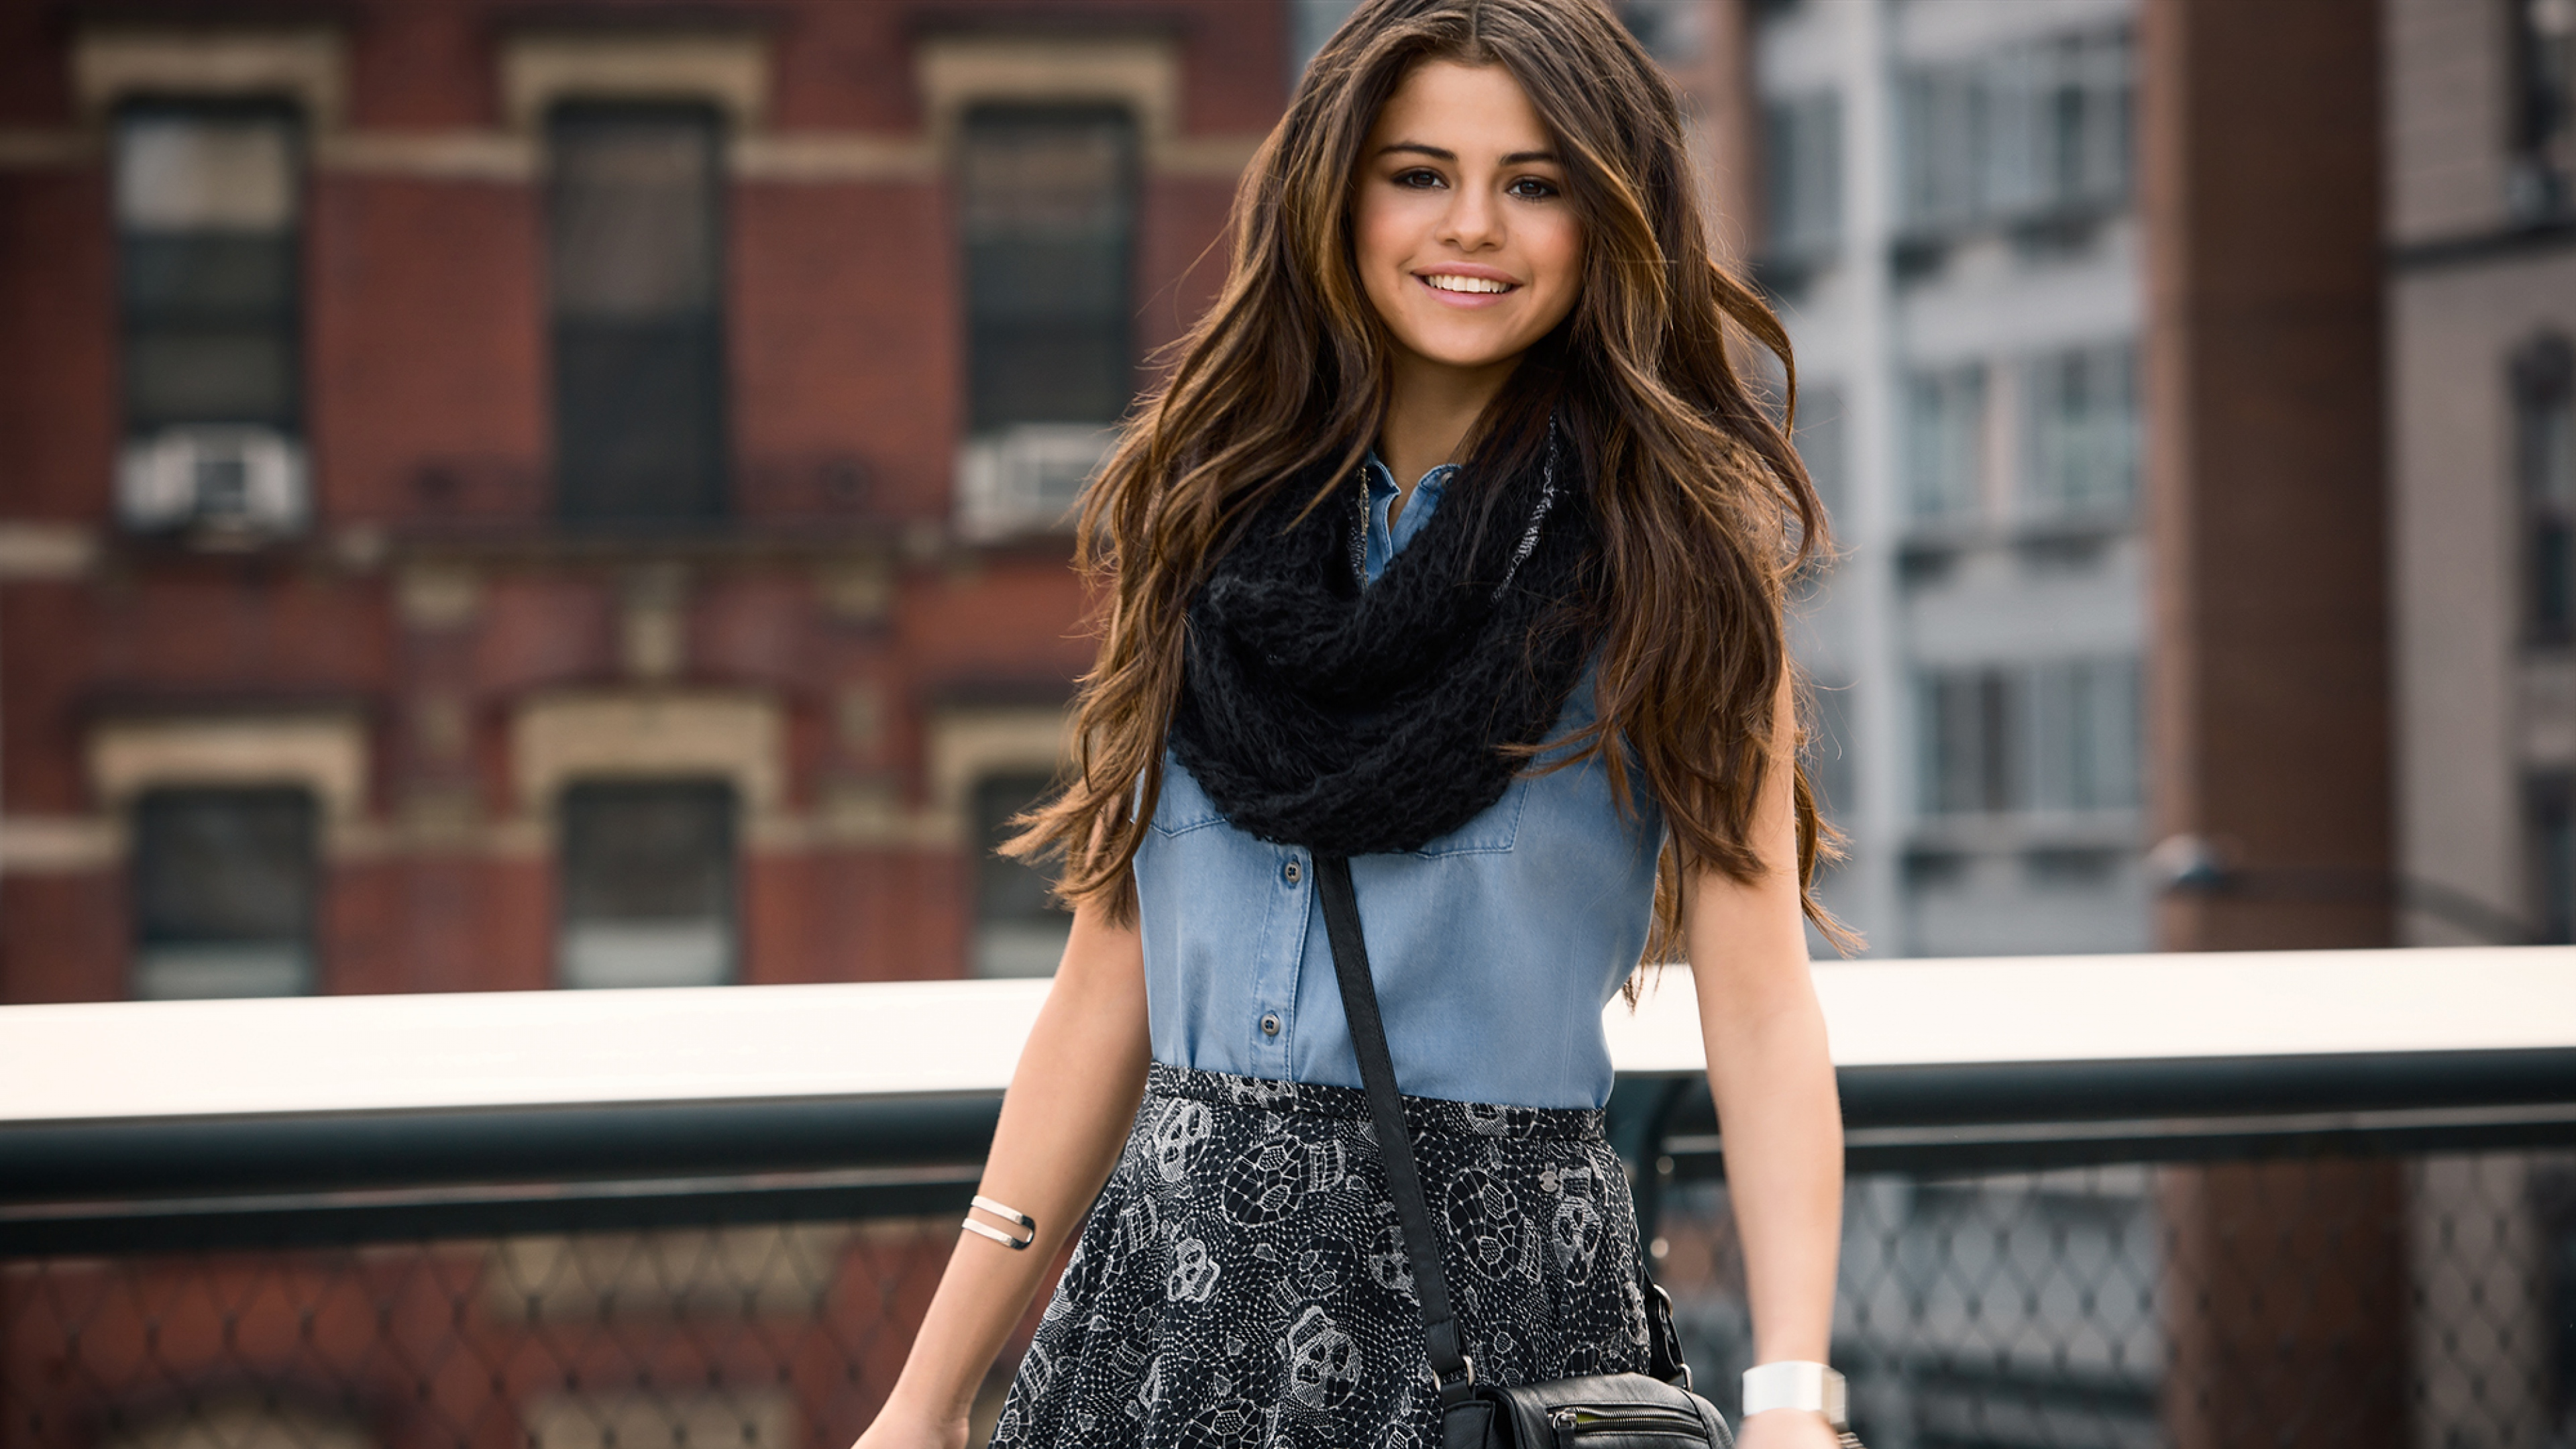 320x568 Selena Gomez 3 320x568 Resolution Hd 4k Wallpapers Images